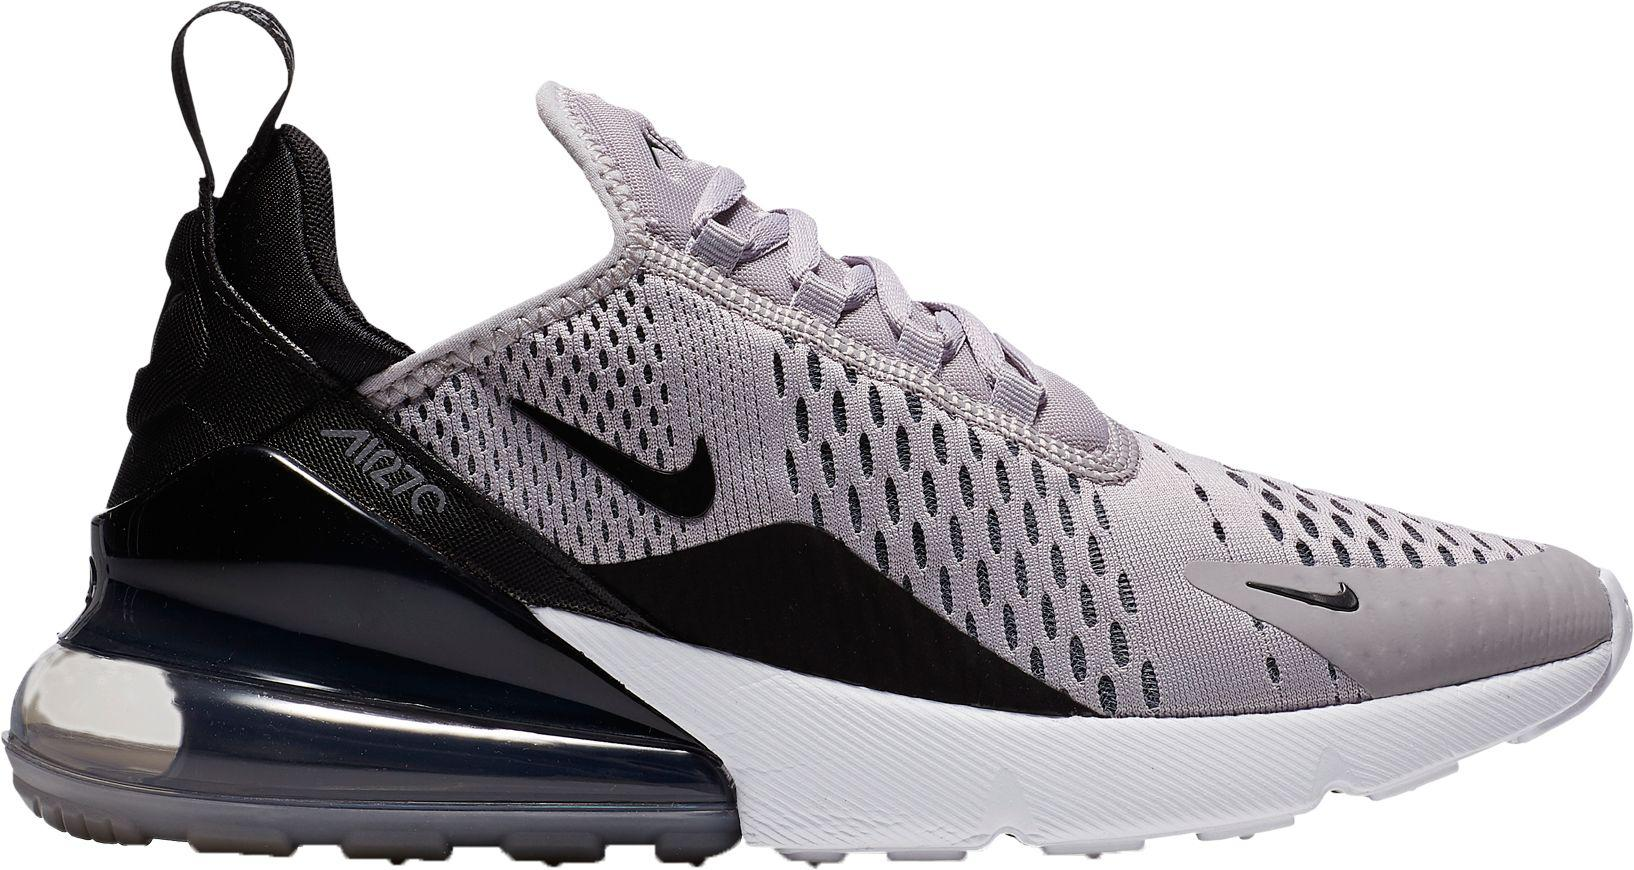 reputable site 6bea0 2d129 Nike - Multicolor Air Max 270 Shoes - Lyst